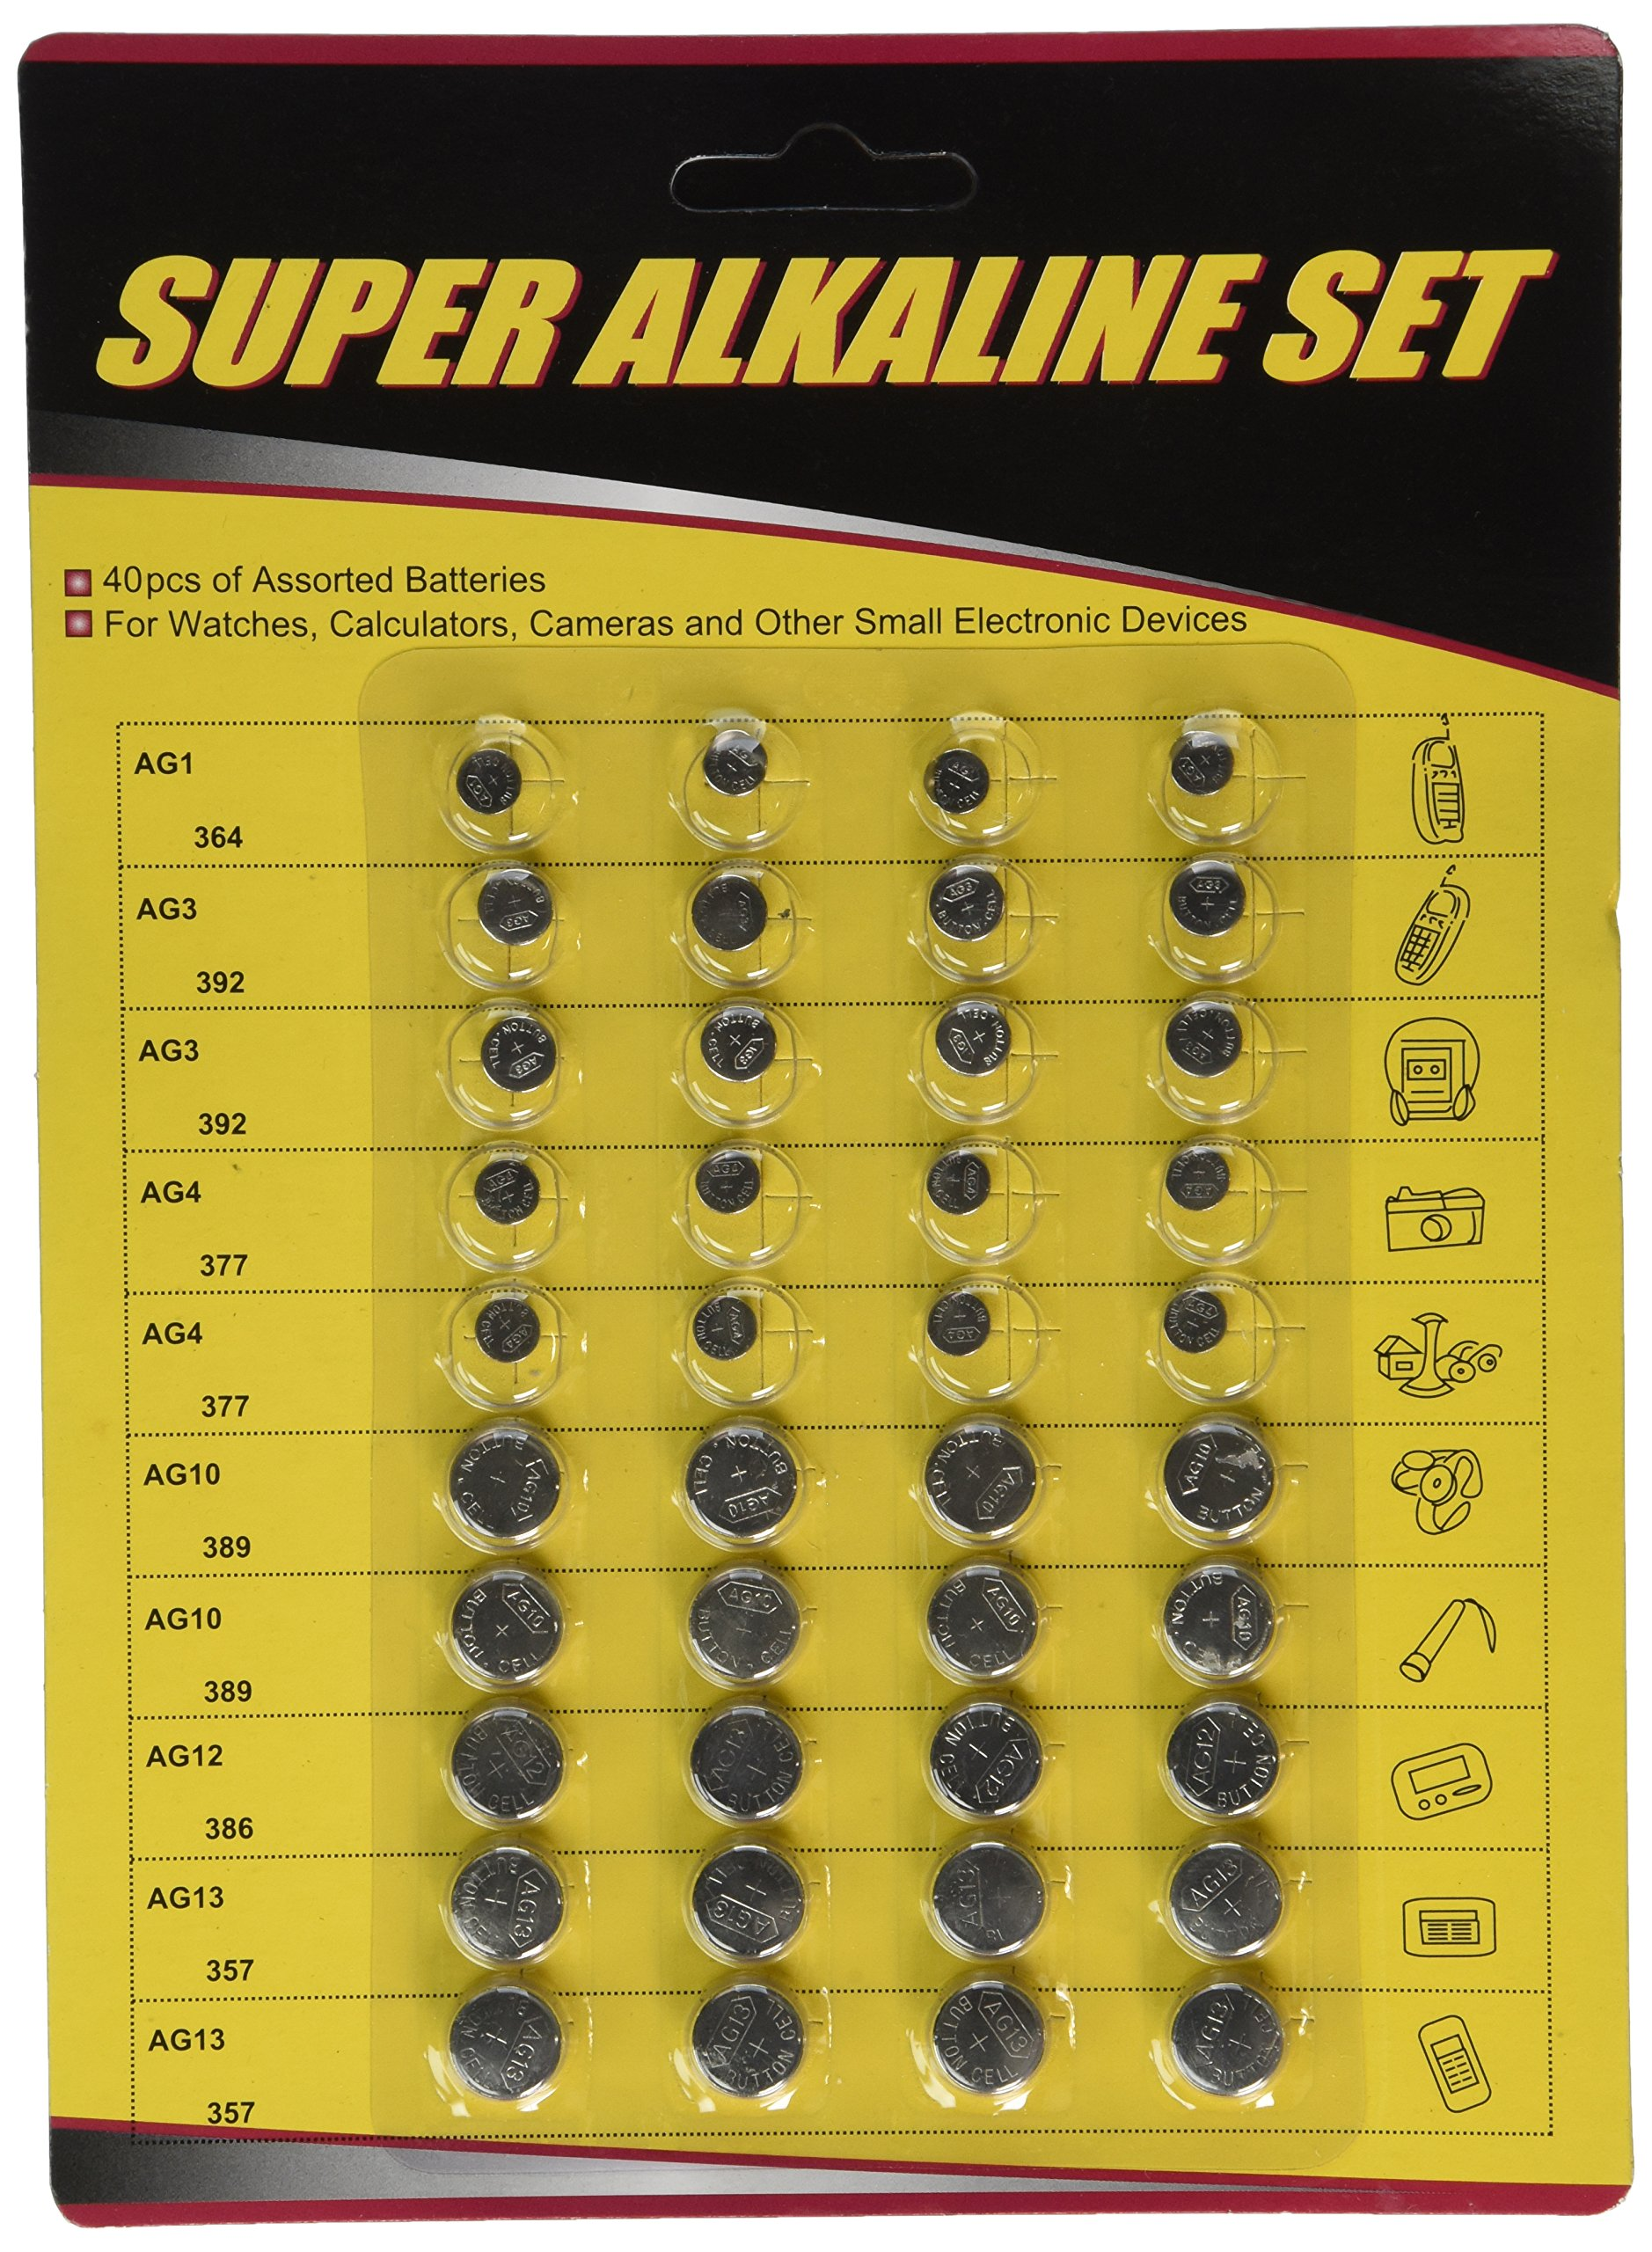 US Digital 40-Pack High Power Assorted Alkaline button Cell Battery Kit